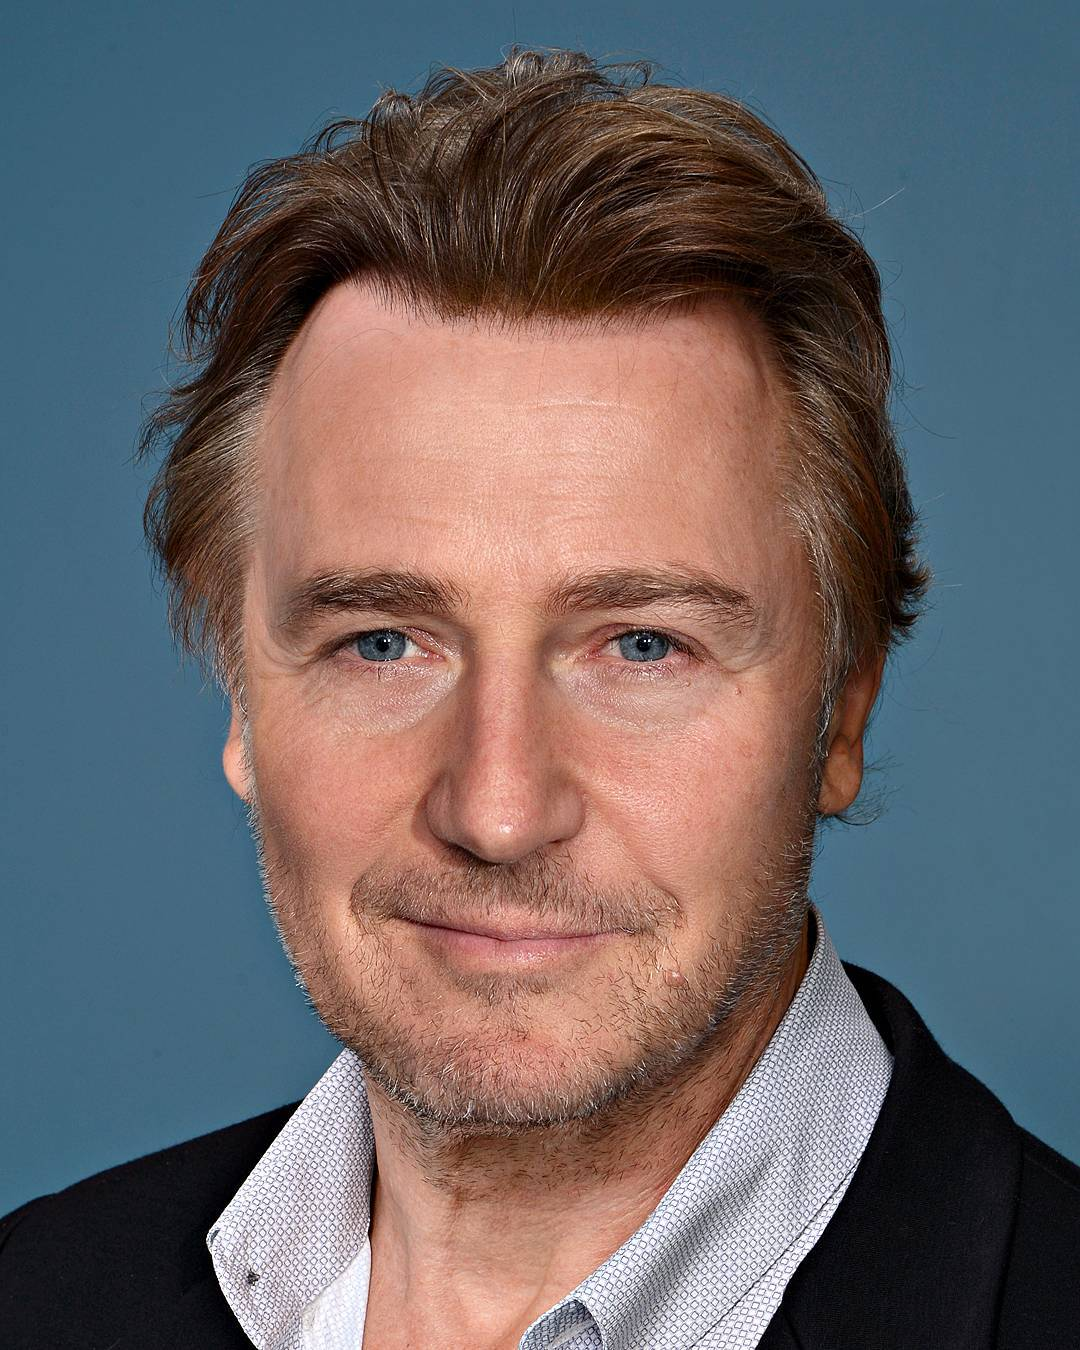 Photoshop Guru Fuses Celebrity Faces Together - Liam Neeson and Edward Norton